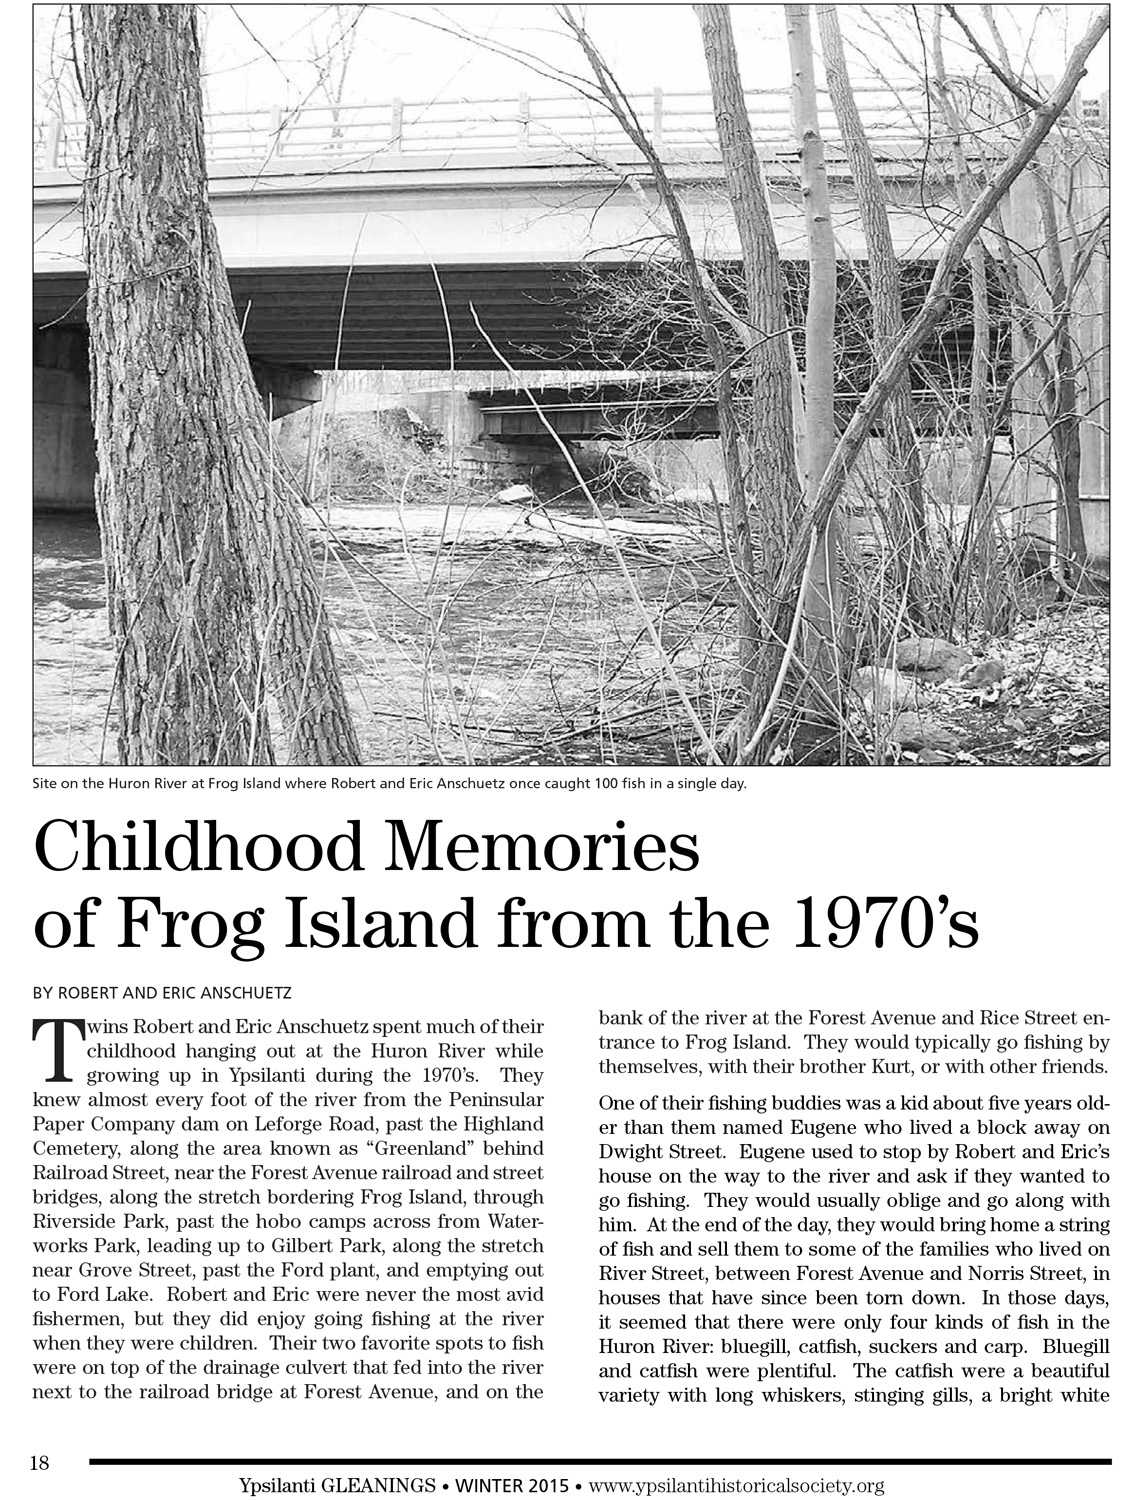 Childhood Memories of Frog Island from the 1970's image